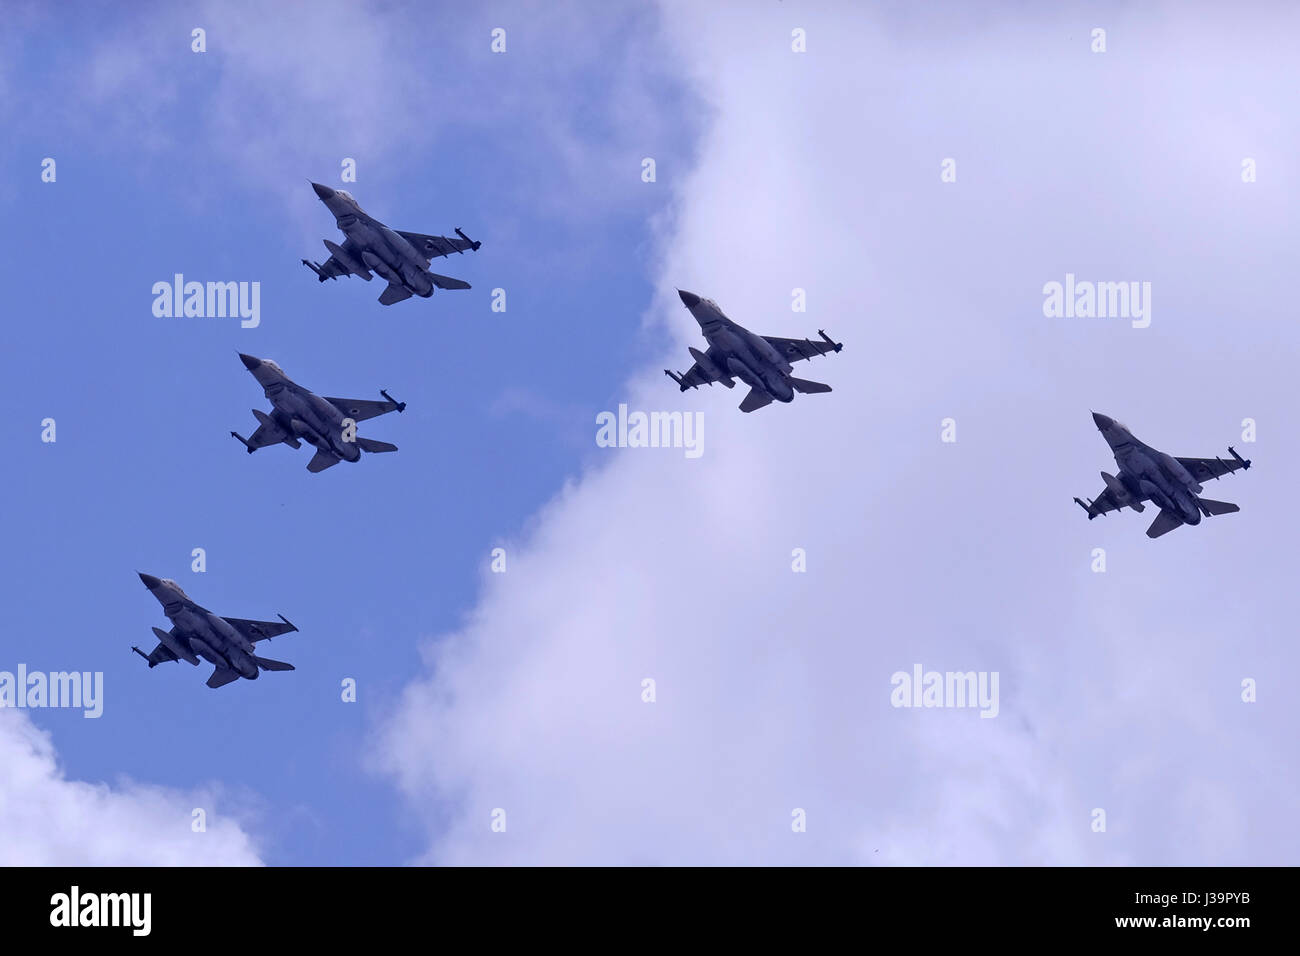 F-16D Fighting Falcon also called Barak jet fighters at an airshow of the Israeli air force. - Stock Image